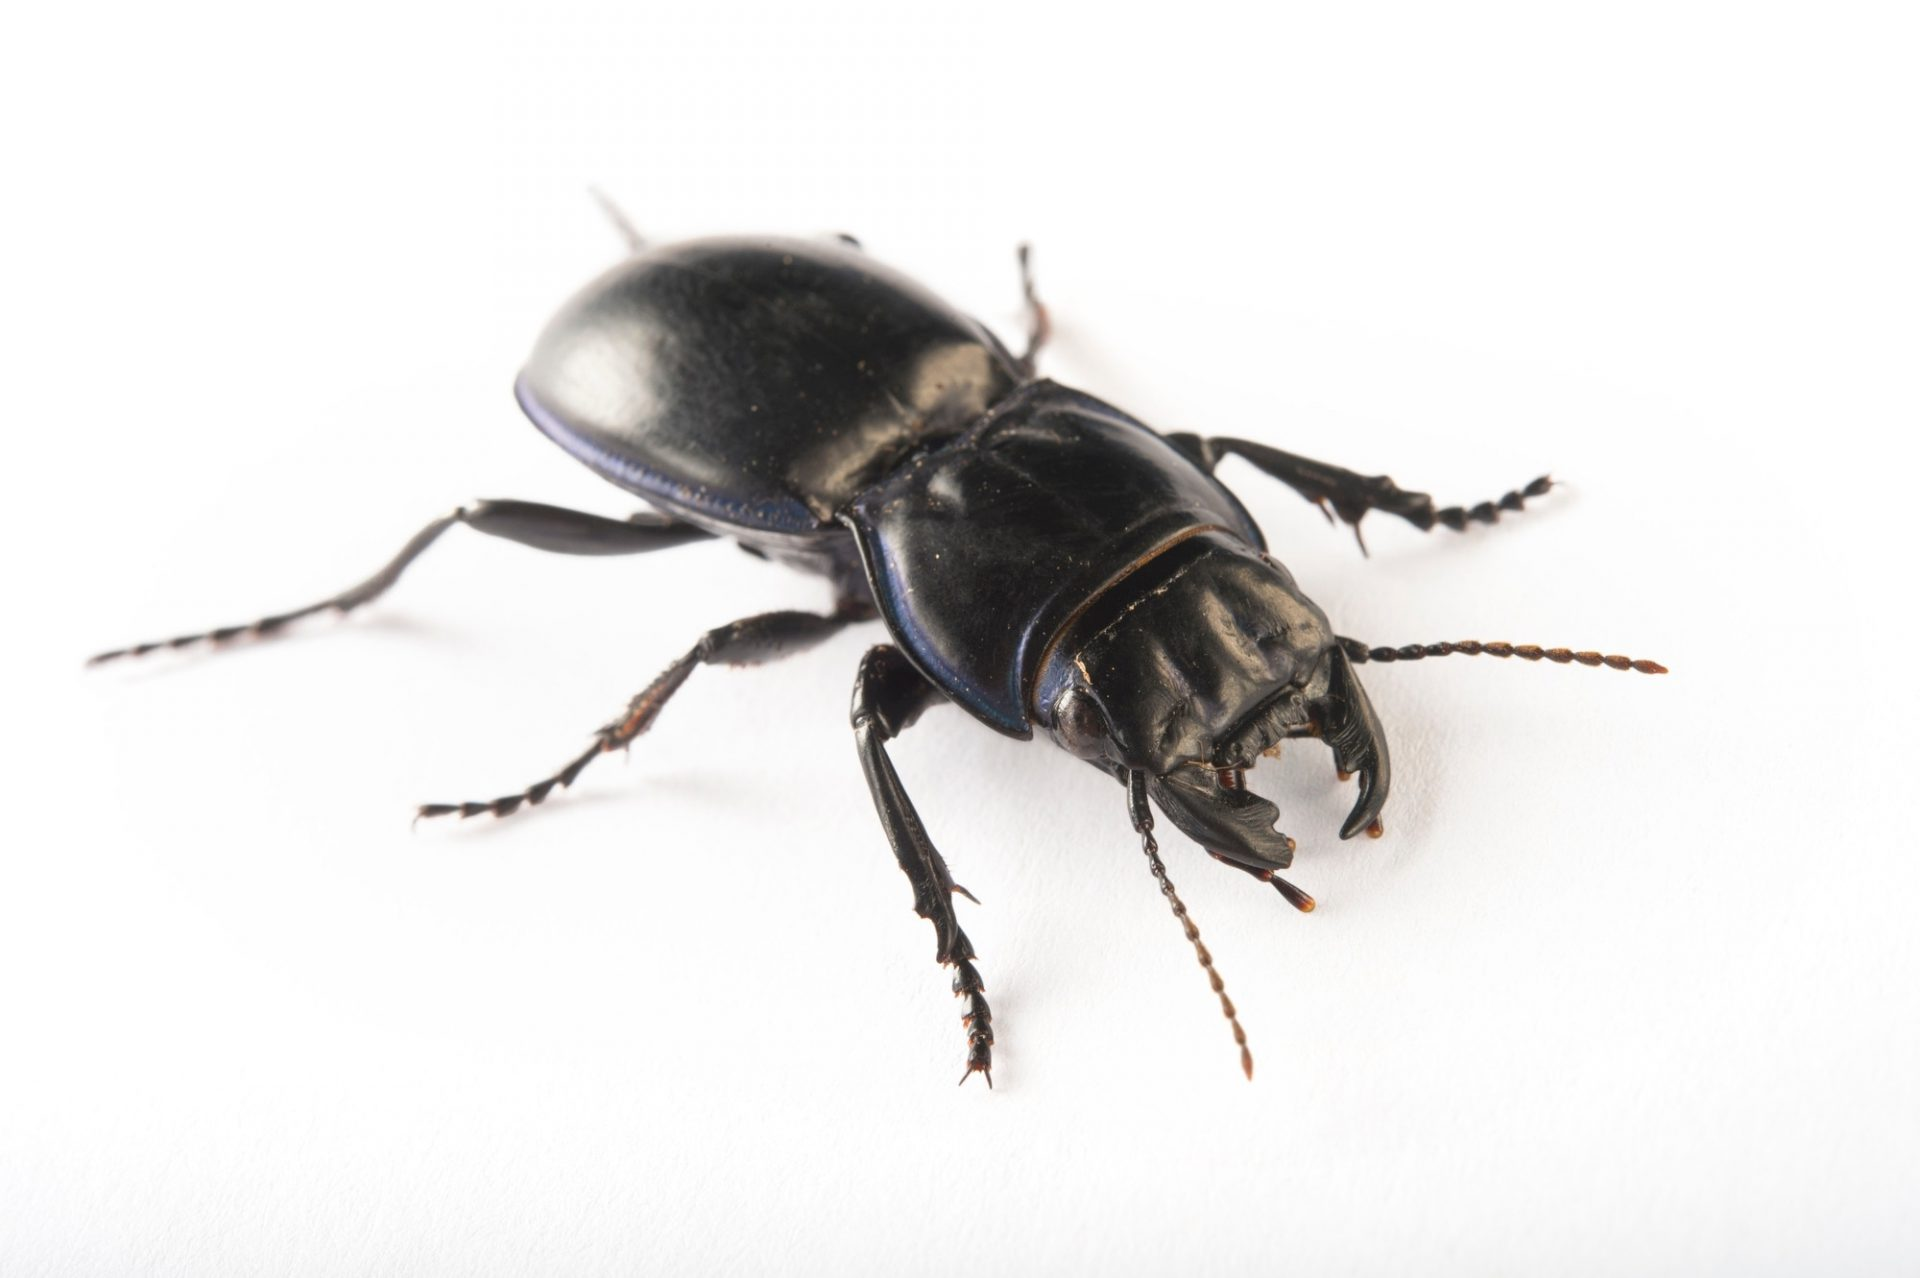 Picture of a blue-margined ground beetle (Pasimachus marginatus) at the Dallas Zoo in Dallas, Texas.